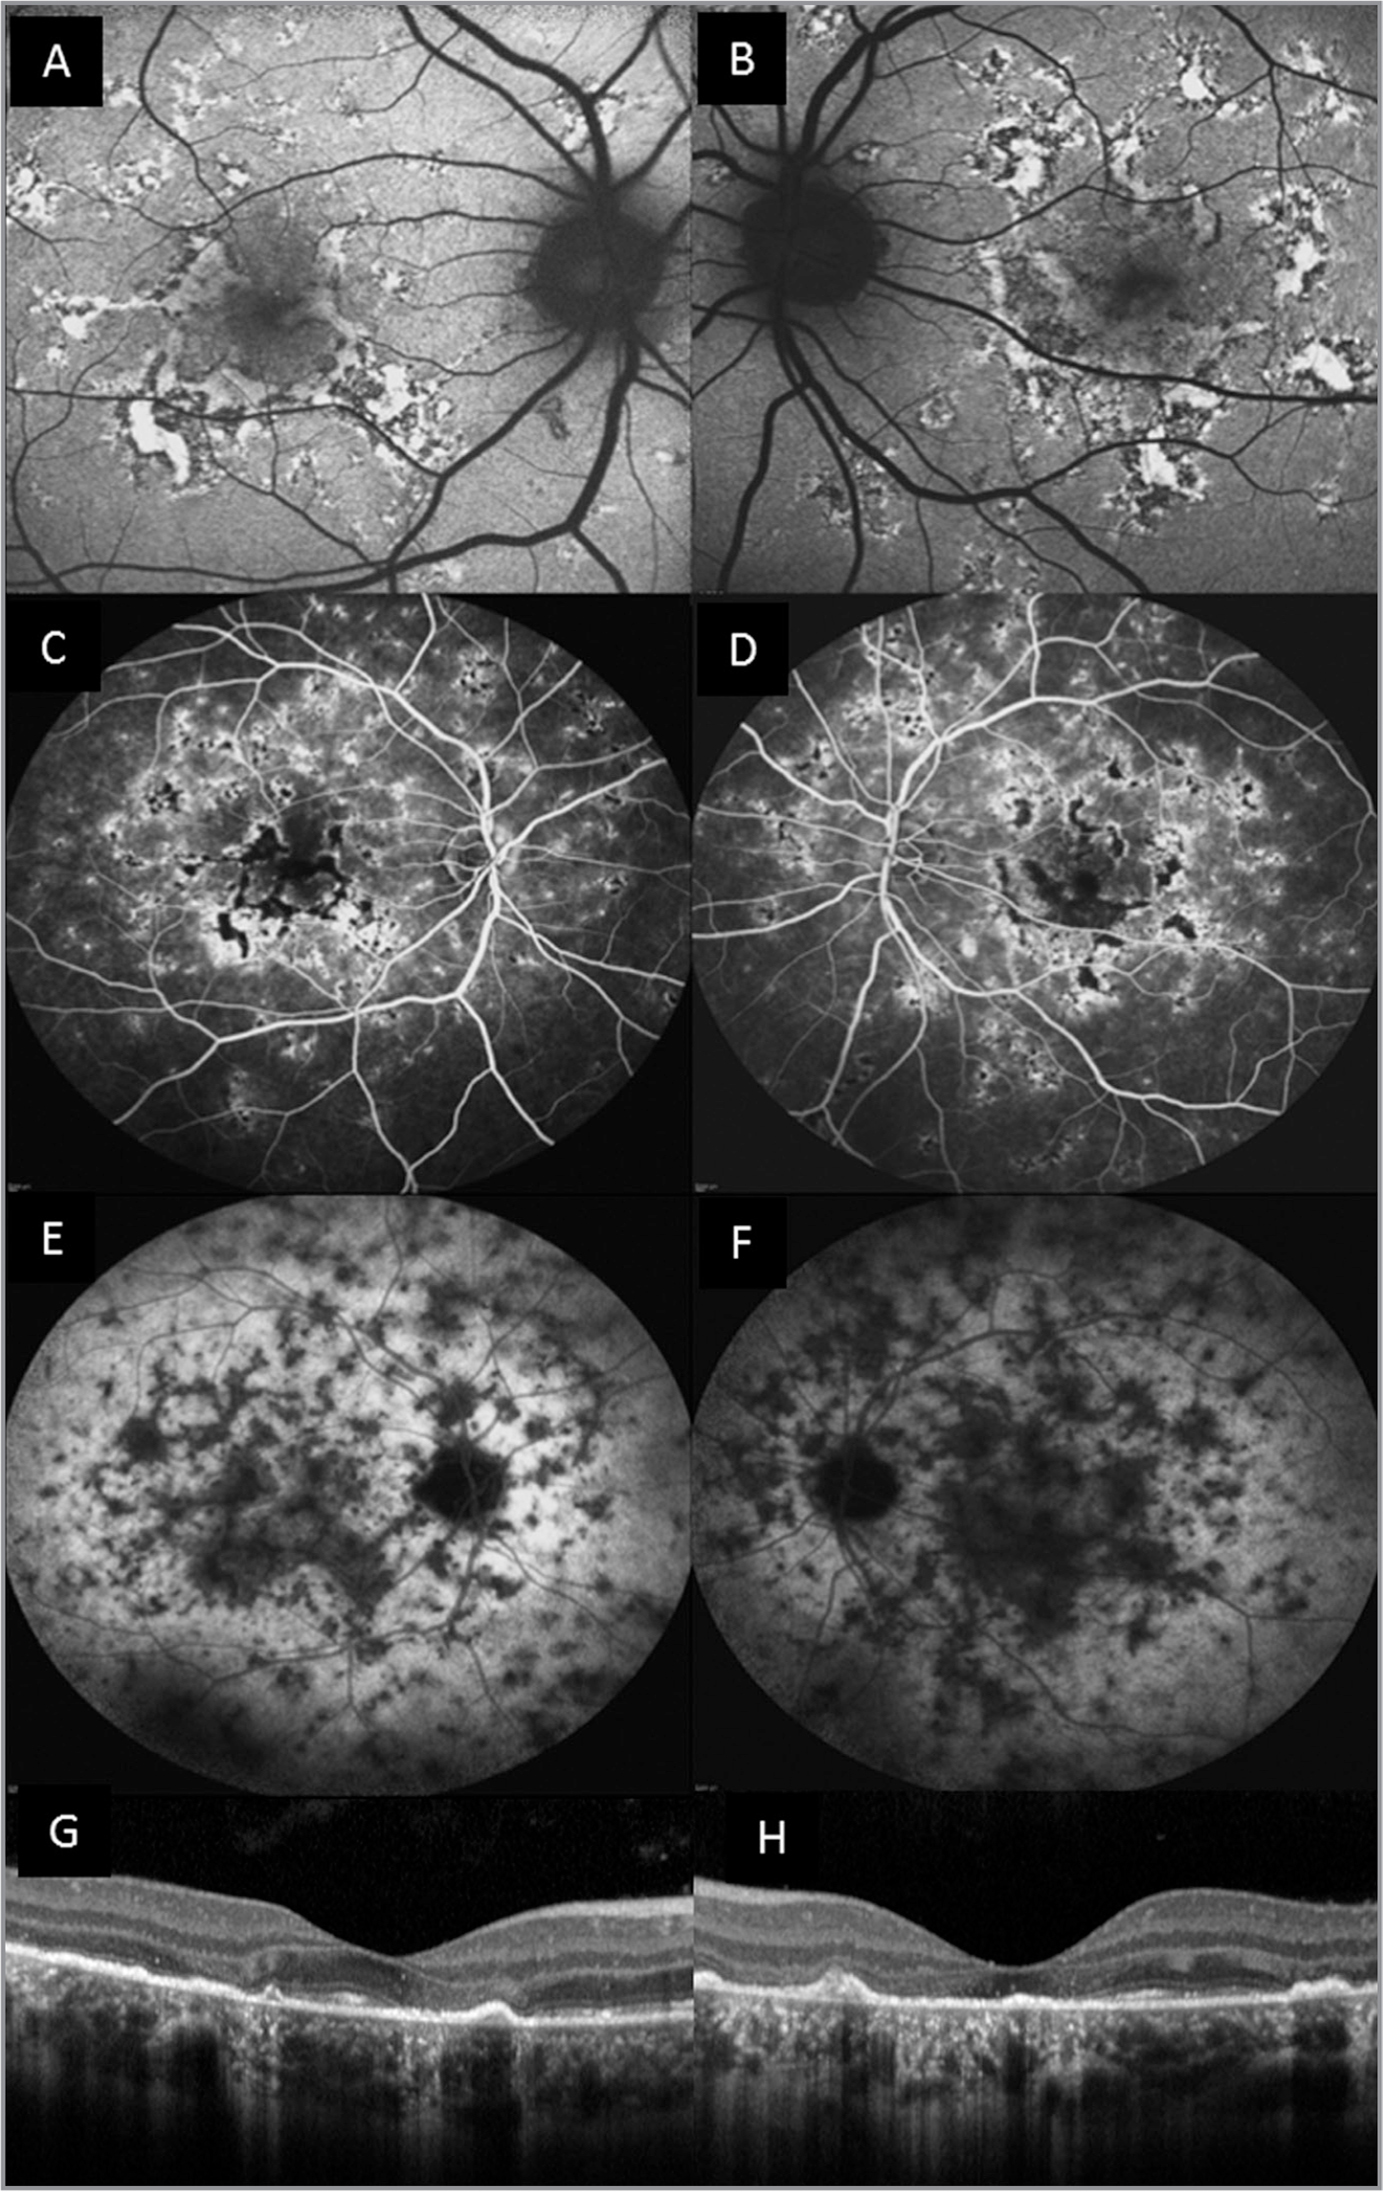 Multimodal imaging of patient No. 2; both right and left eyes are shown. (A, B) Fundus autofluorescence. (C, D) Fluorescein angiography. (E, F) Indocyanine green angiography showing bilateral acute posterior multifocal placoid pigment epitheliopathy features. (G, H) Spectral-domain optical coherence tomography revealing diffuse defects of external limiting membrane, photoreceptors, and retinal pigment epithelium with back scattering.